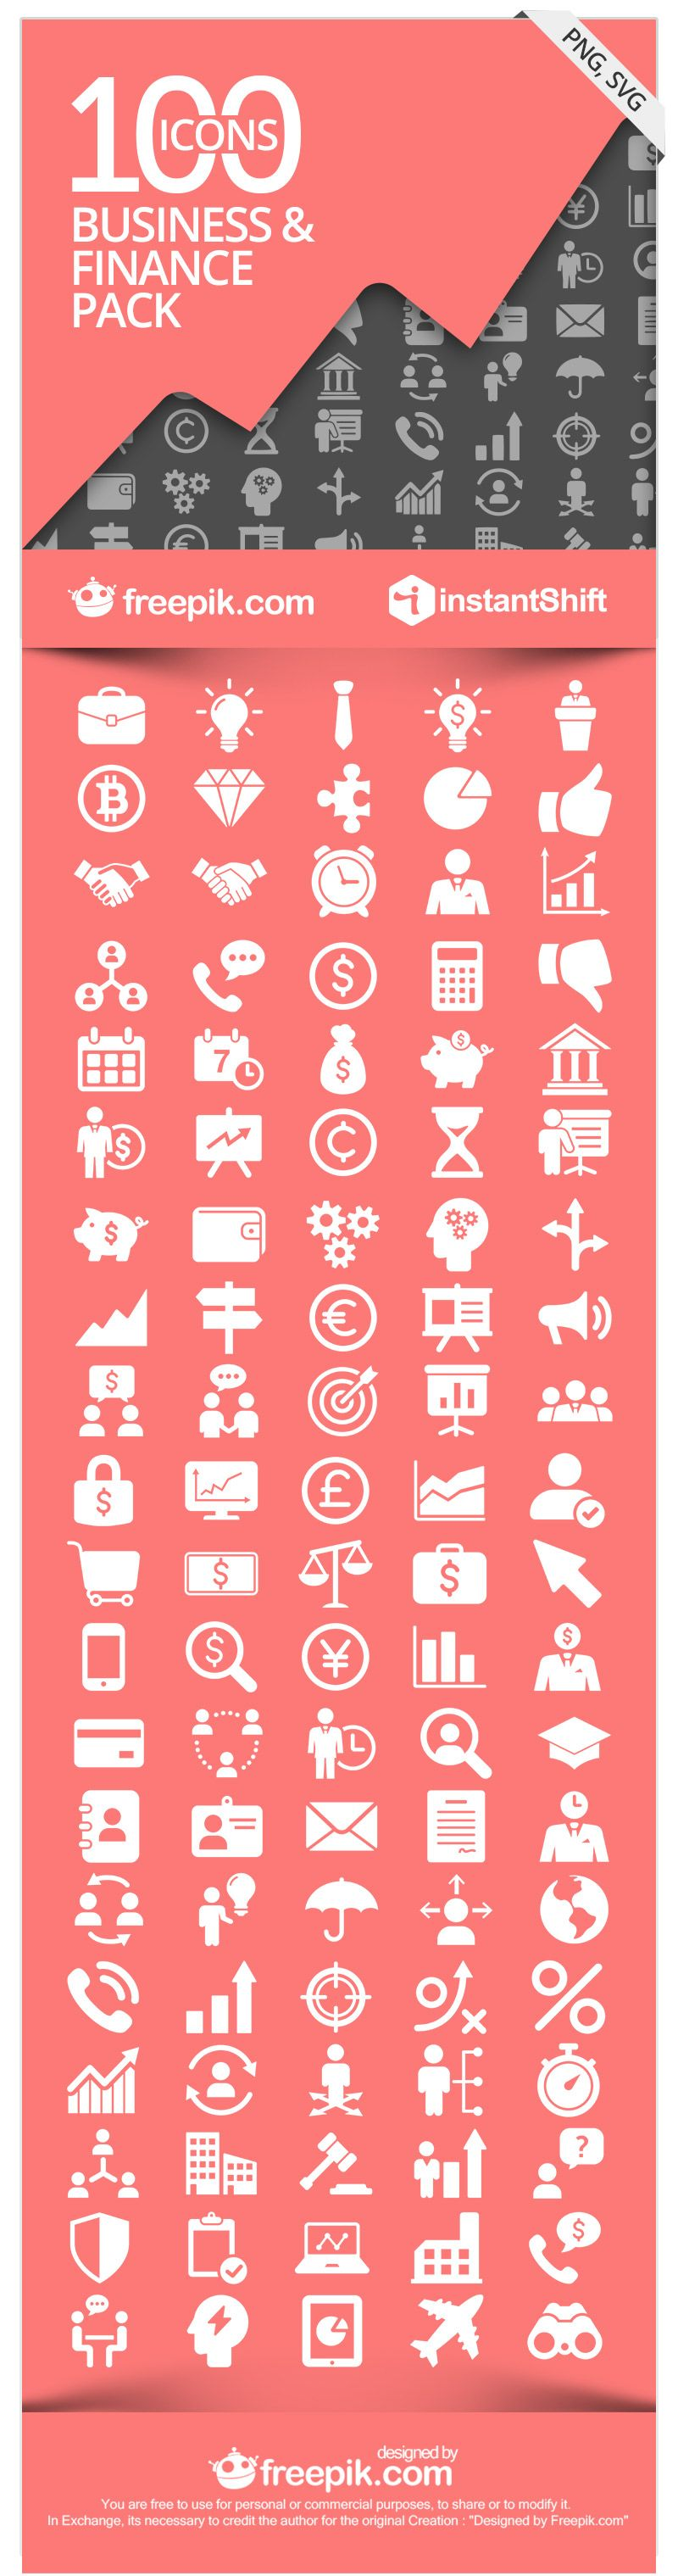 finbiz the free business finance icon set サイン pinterest